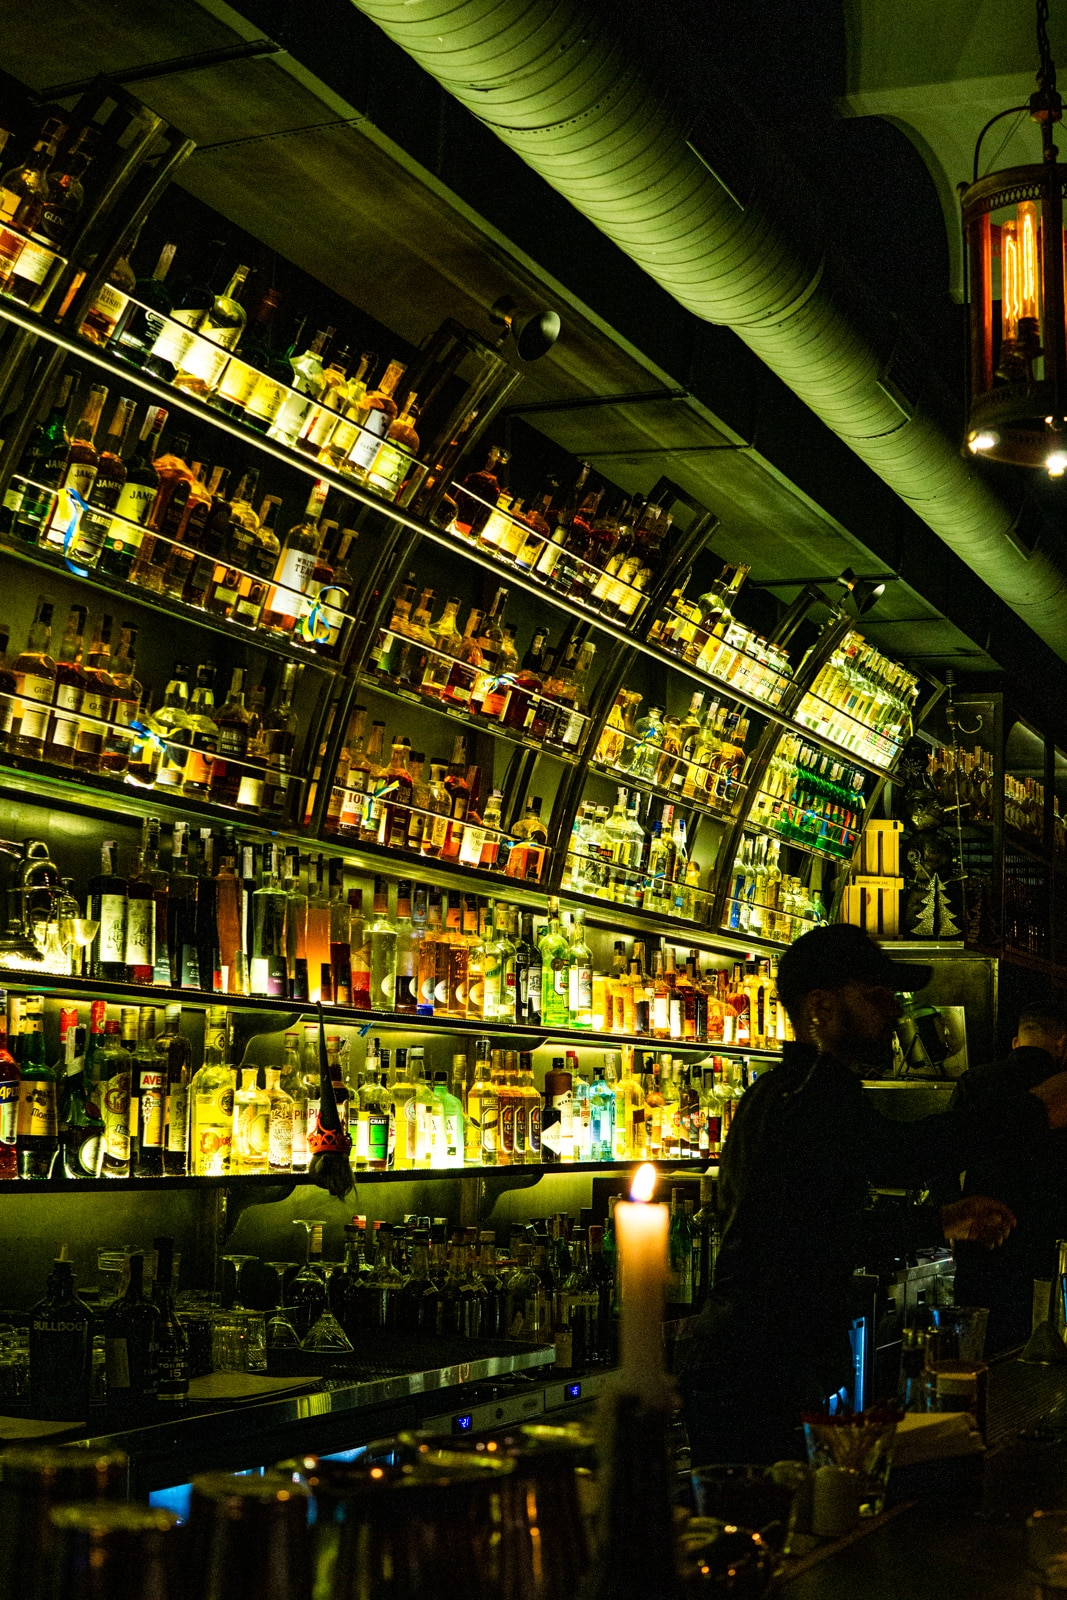 Interior of Dictat cocktail bar in Kyiv, Ukraine